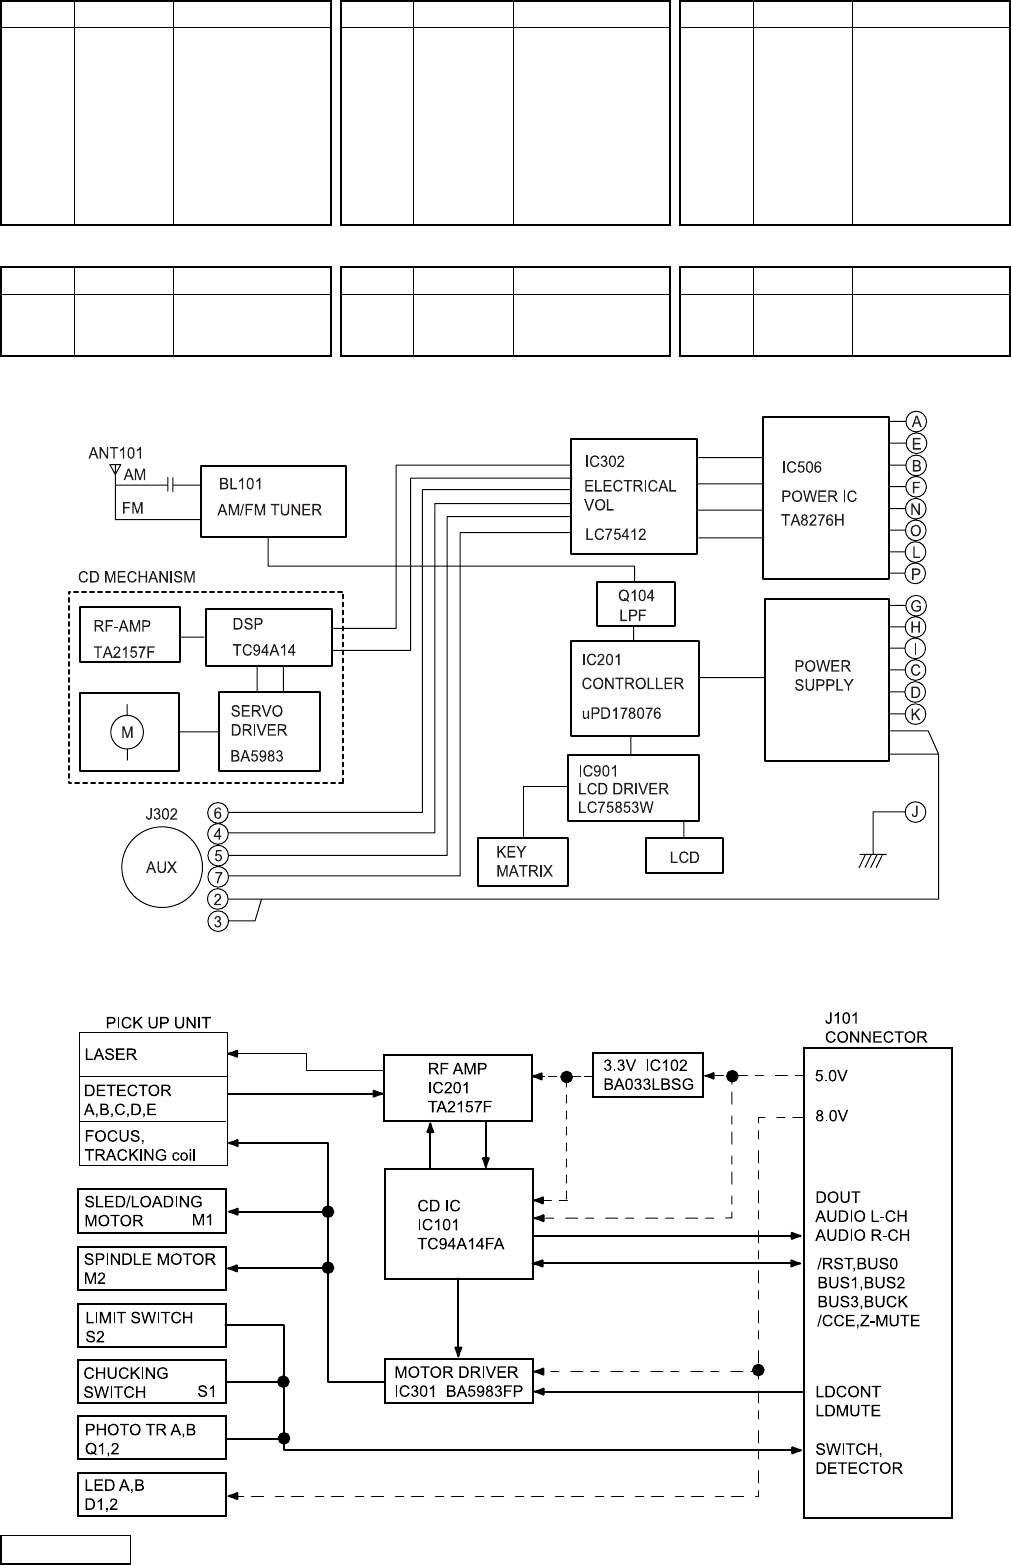 247480dc 6e2b 406a 9d4b 8f030d15cece bga page 10 of clarion radio pn 2445m f user guide manualsonline com clarion vz400 wiring diagram at soozxer.org